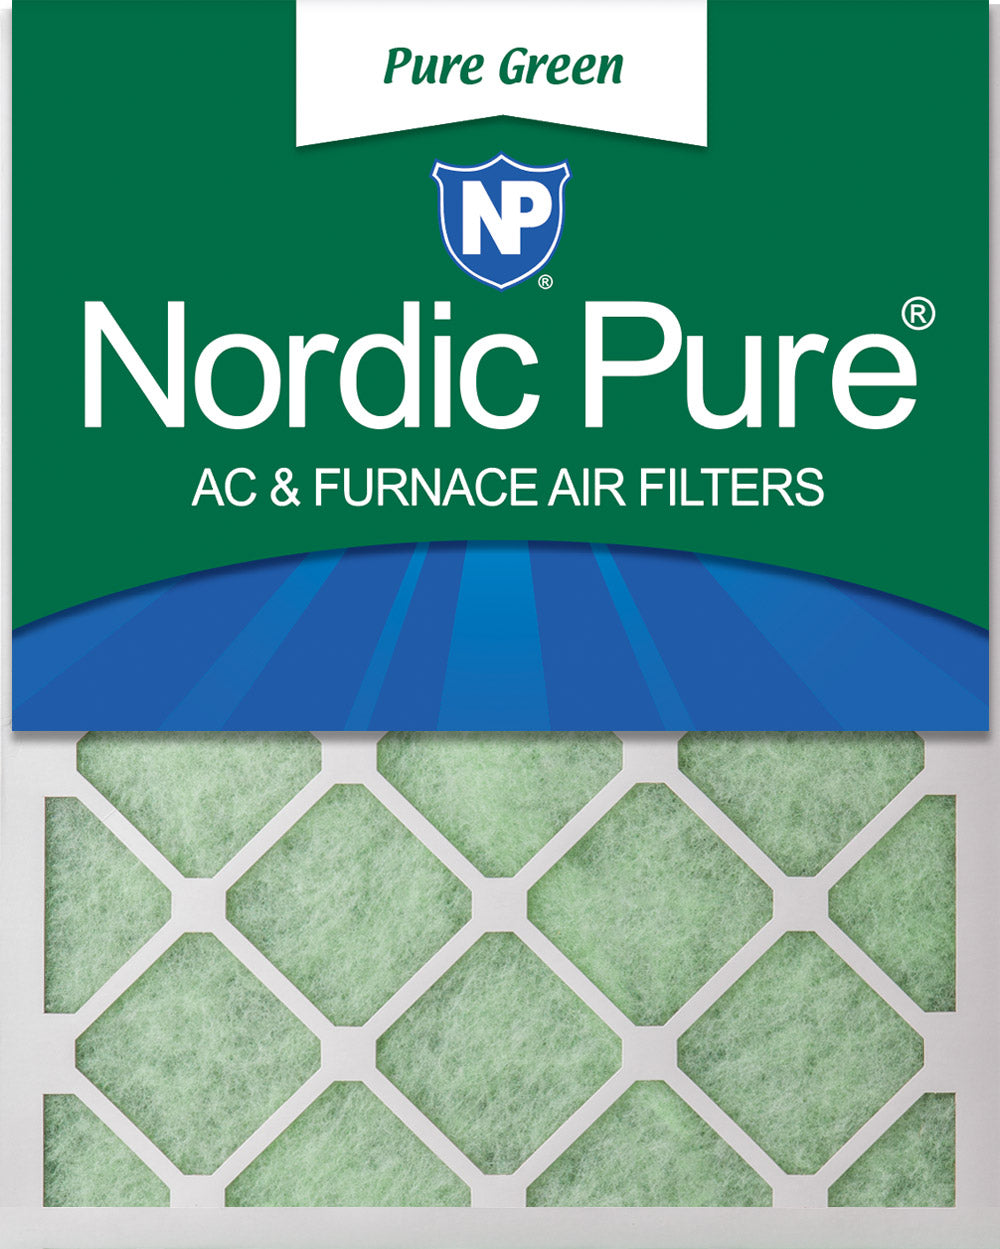 16x24x1 Pure Green Eco-Friendly AC Furnace Air Filters 6 Pack